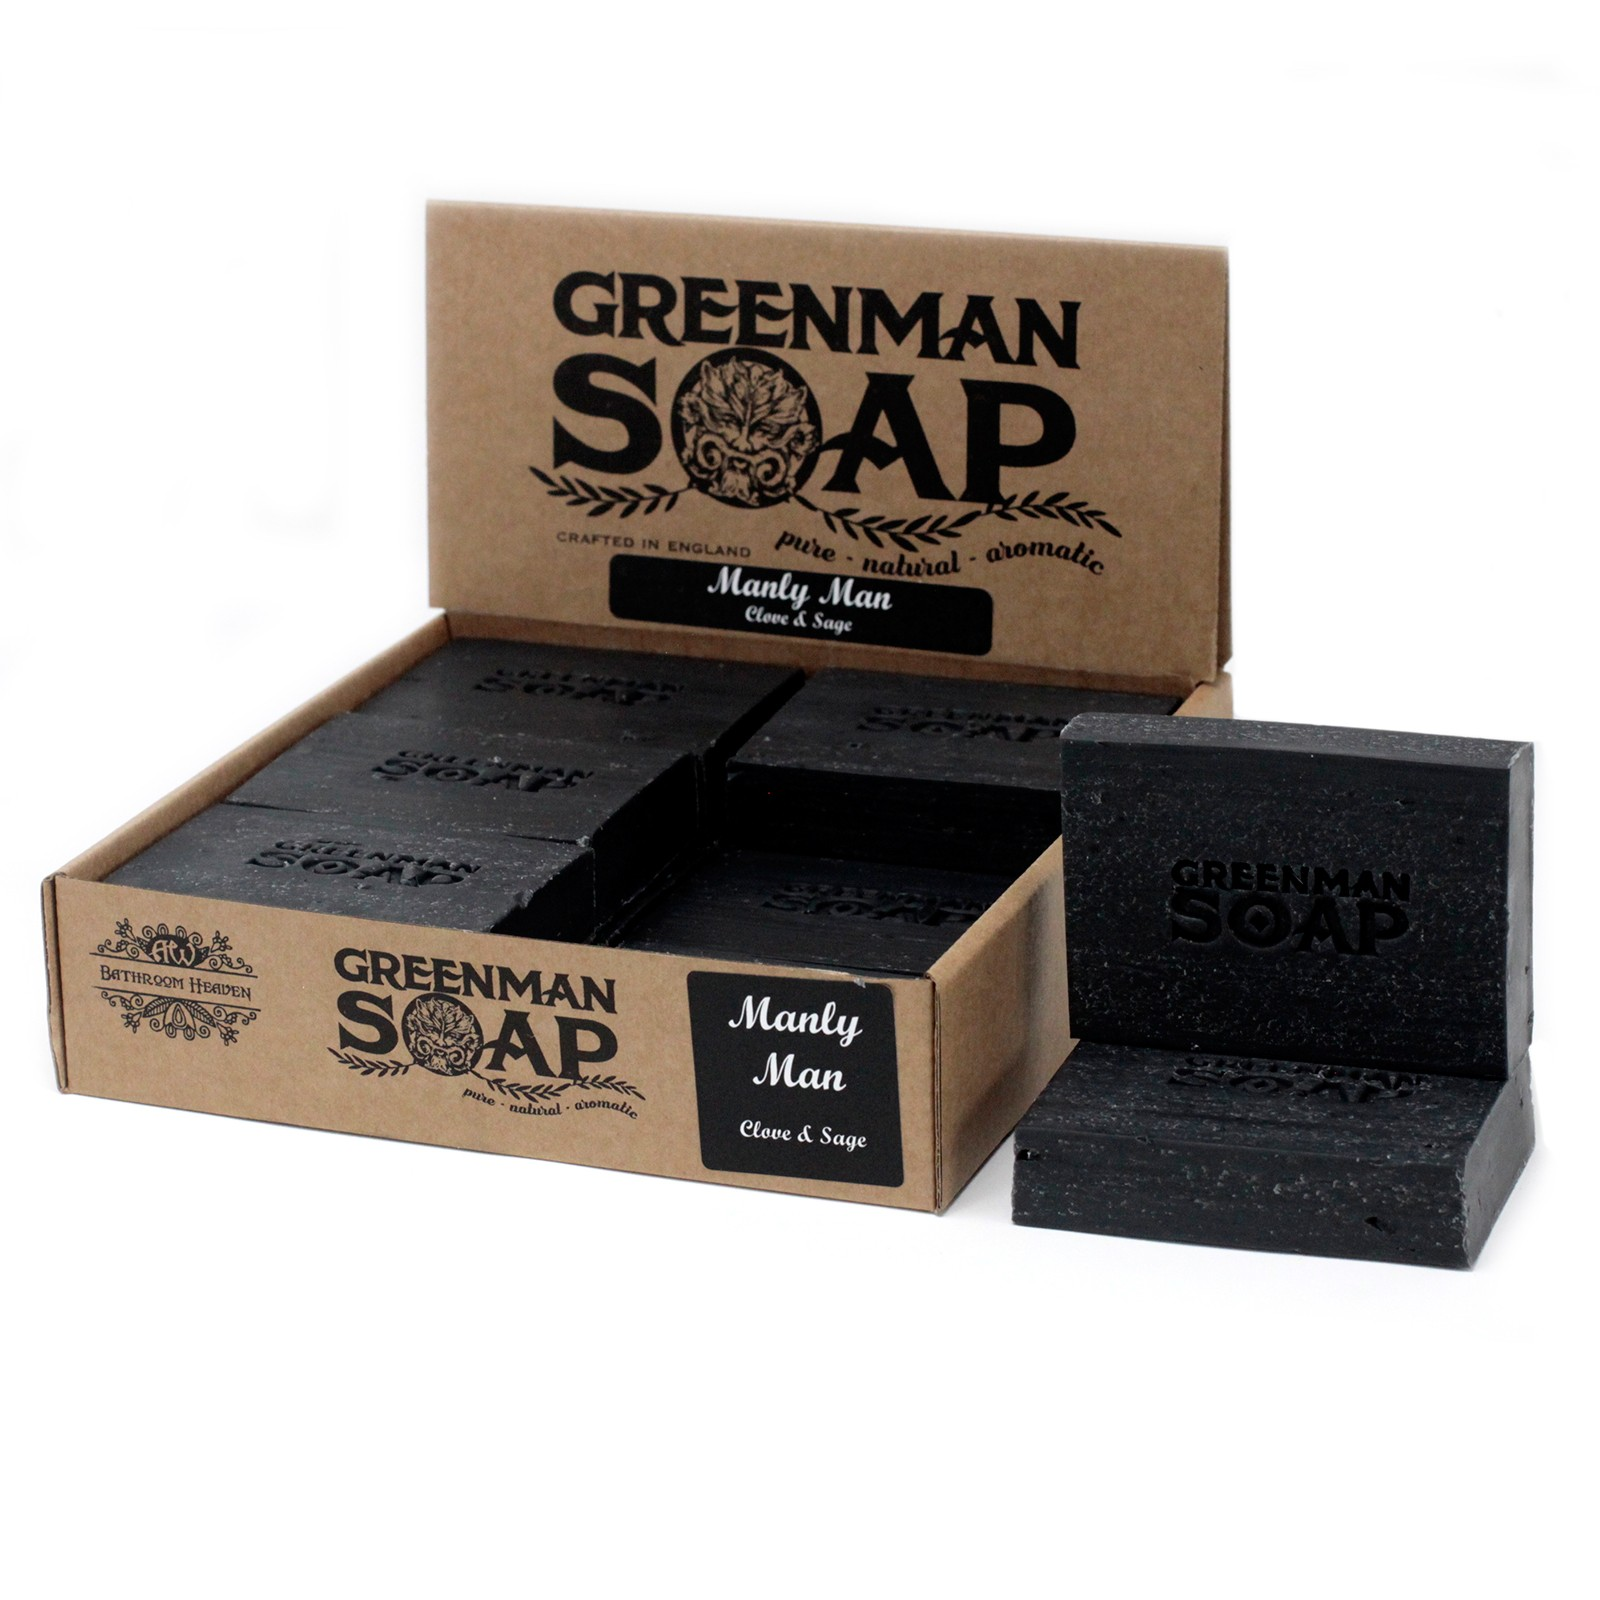 Greenman Soap 100g - Manly Man